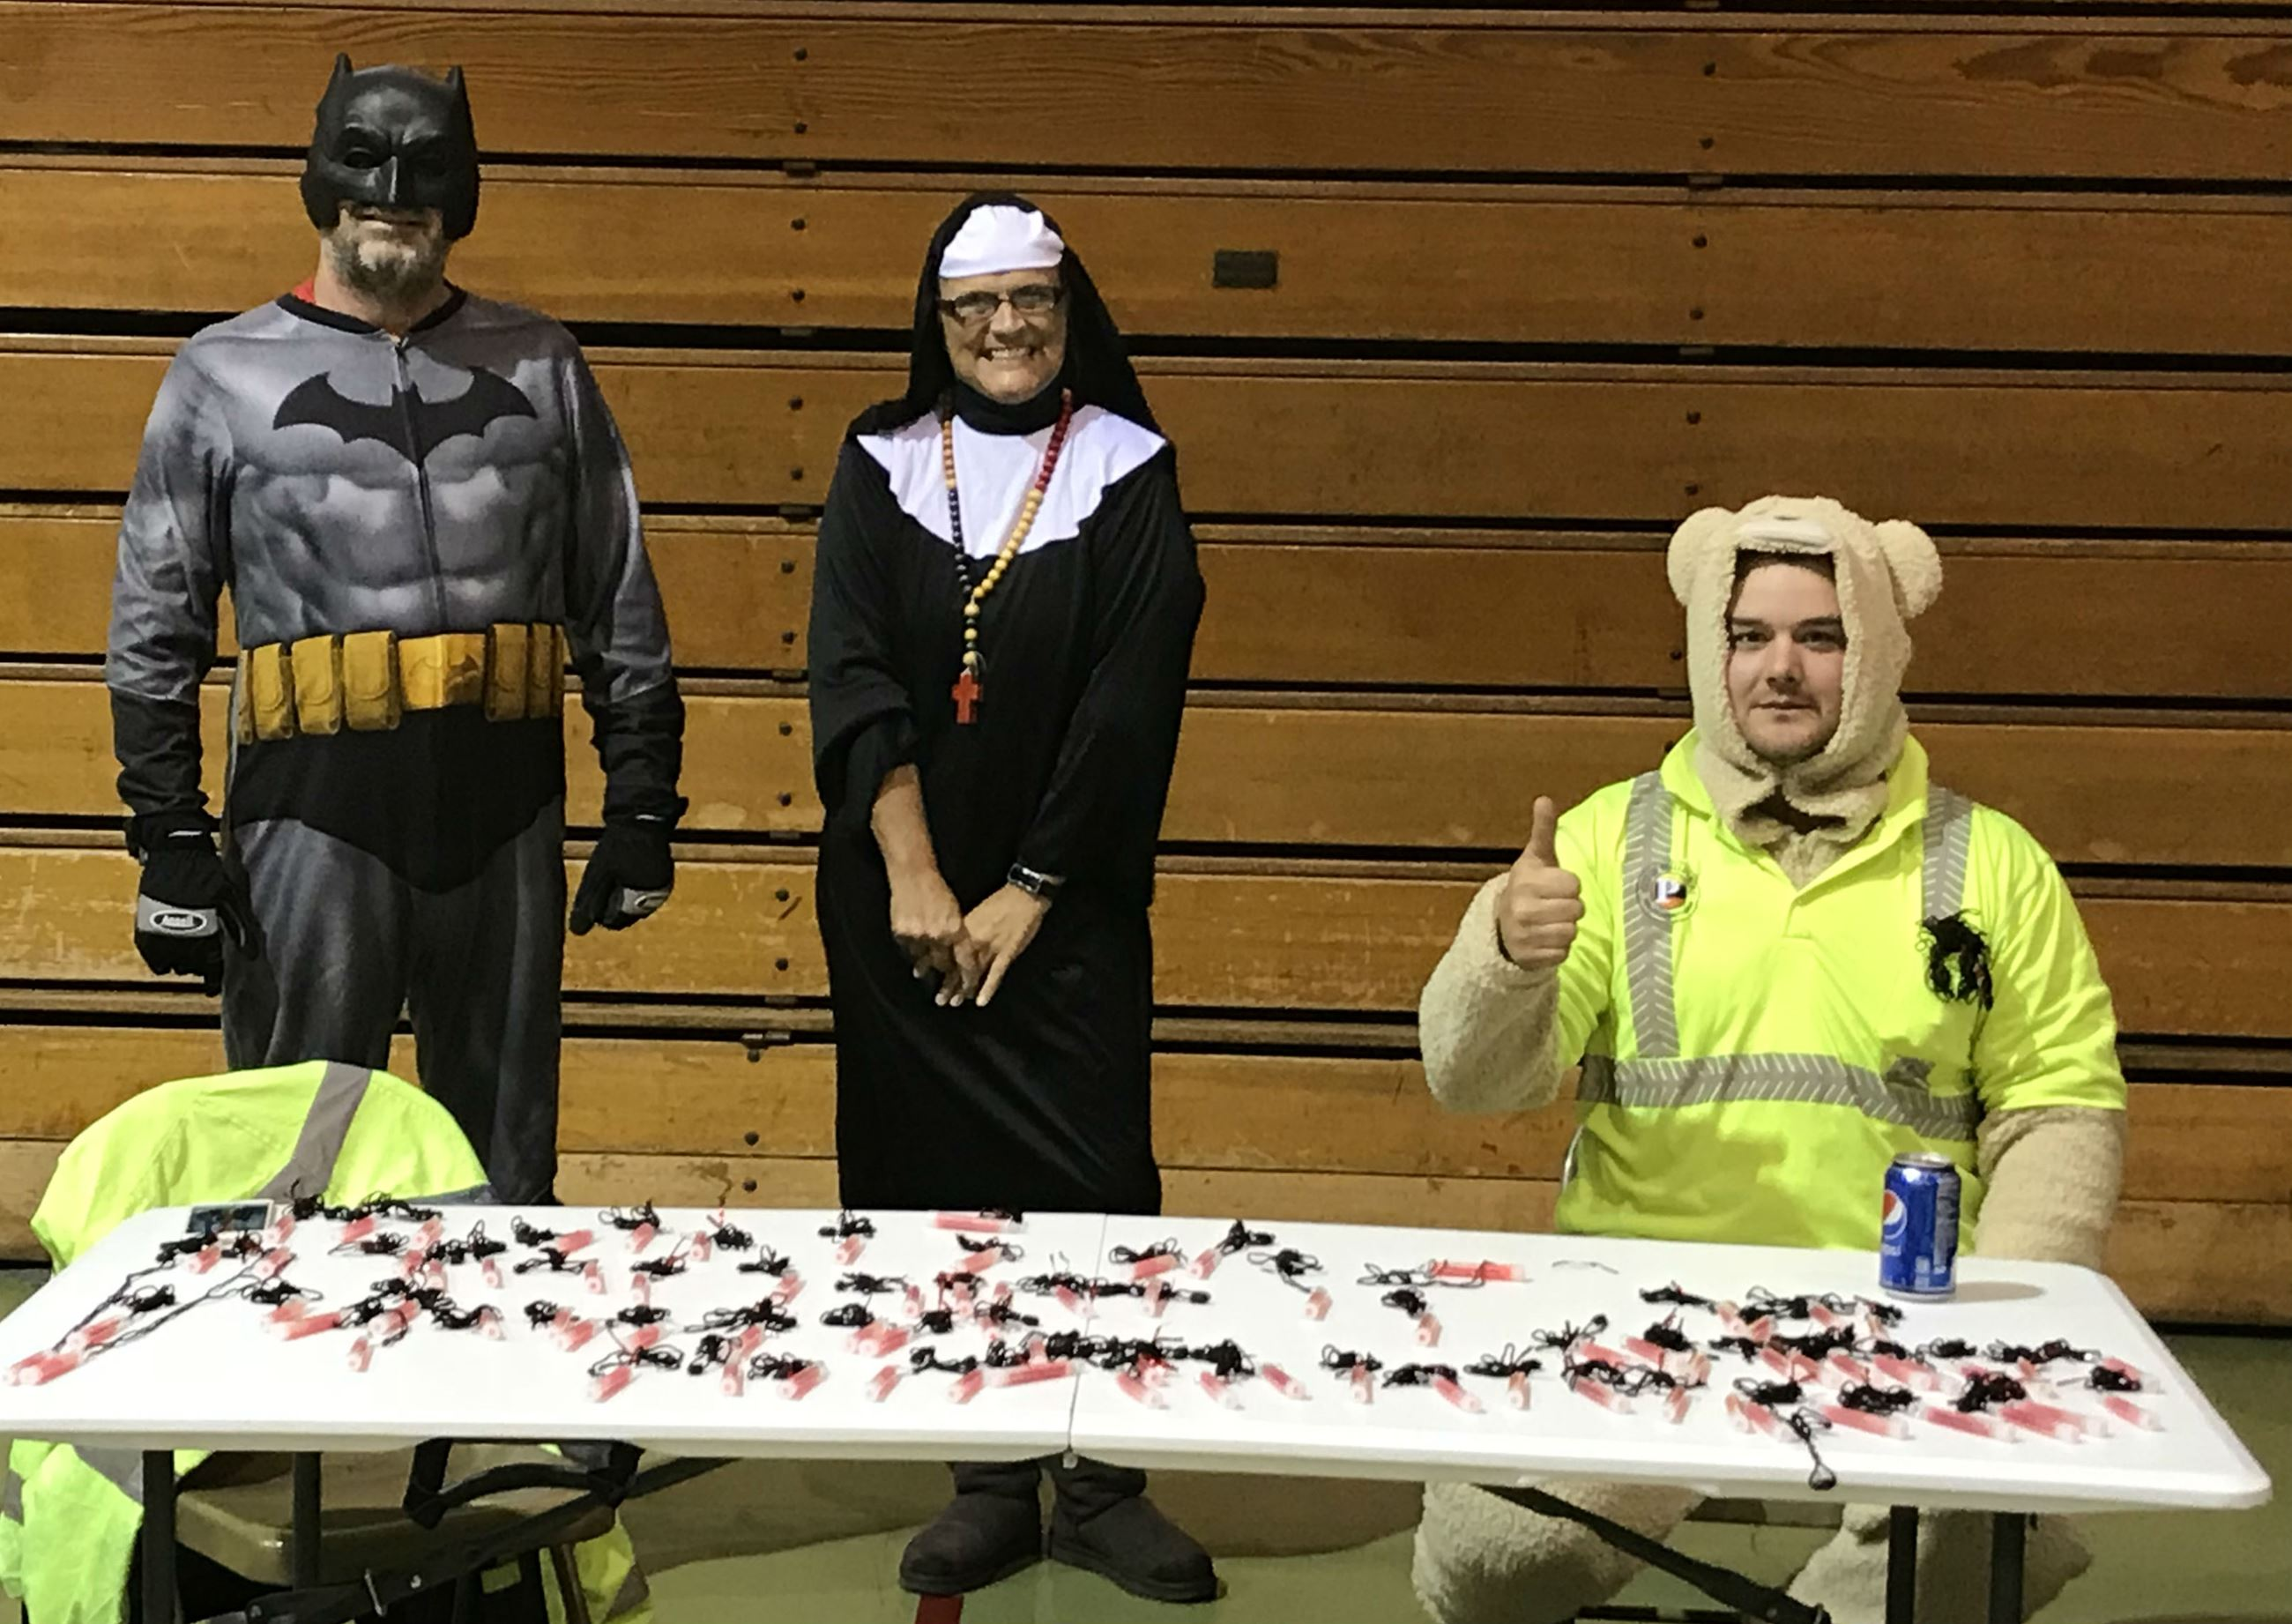 Batman, the Nun, & the Bear